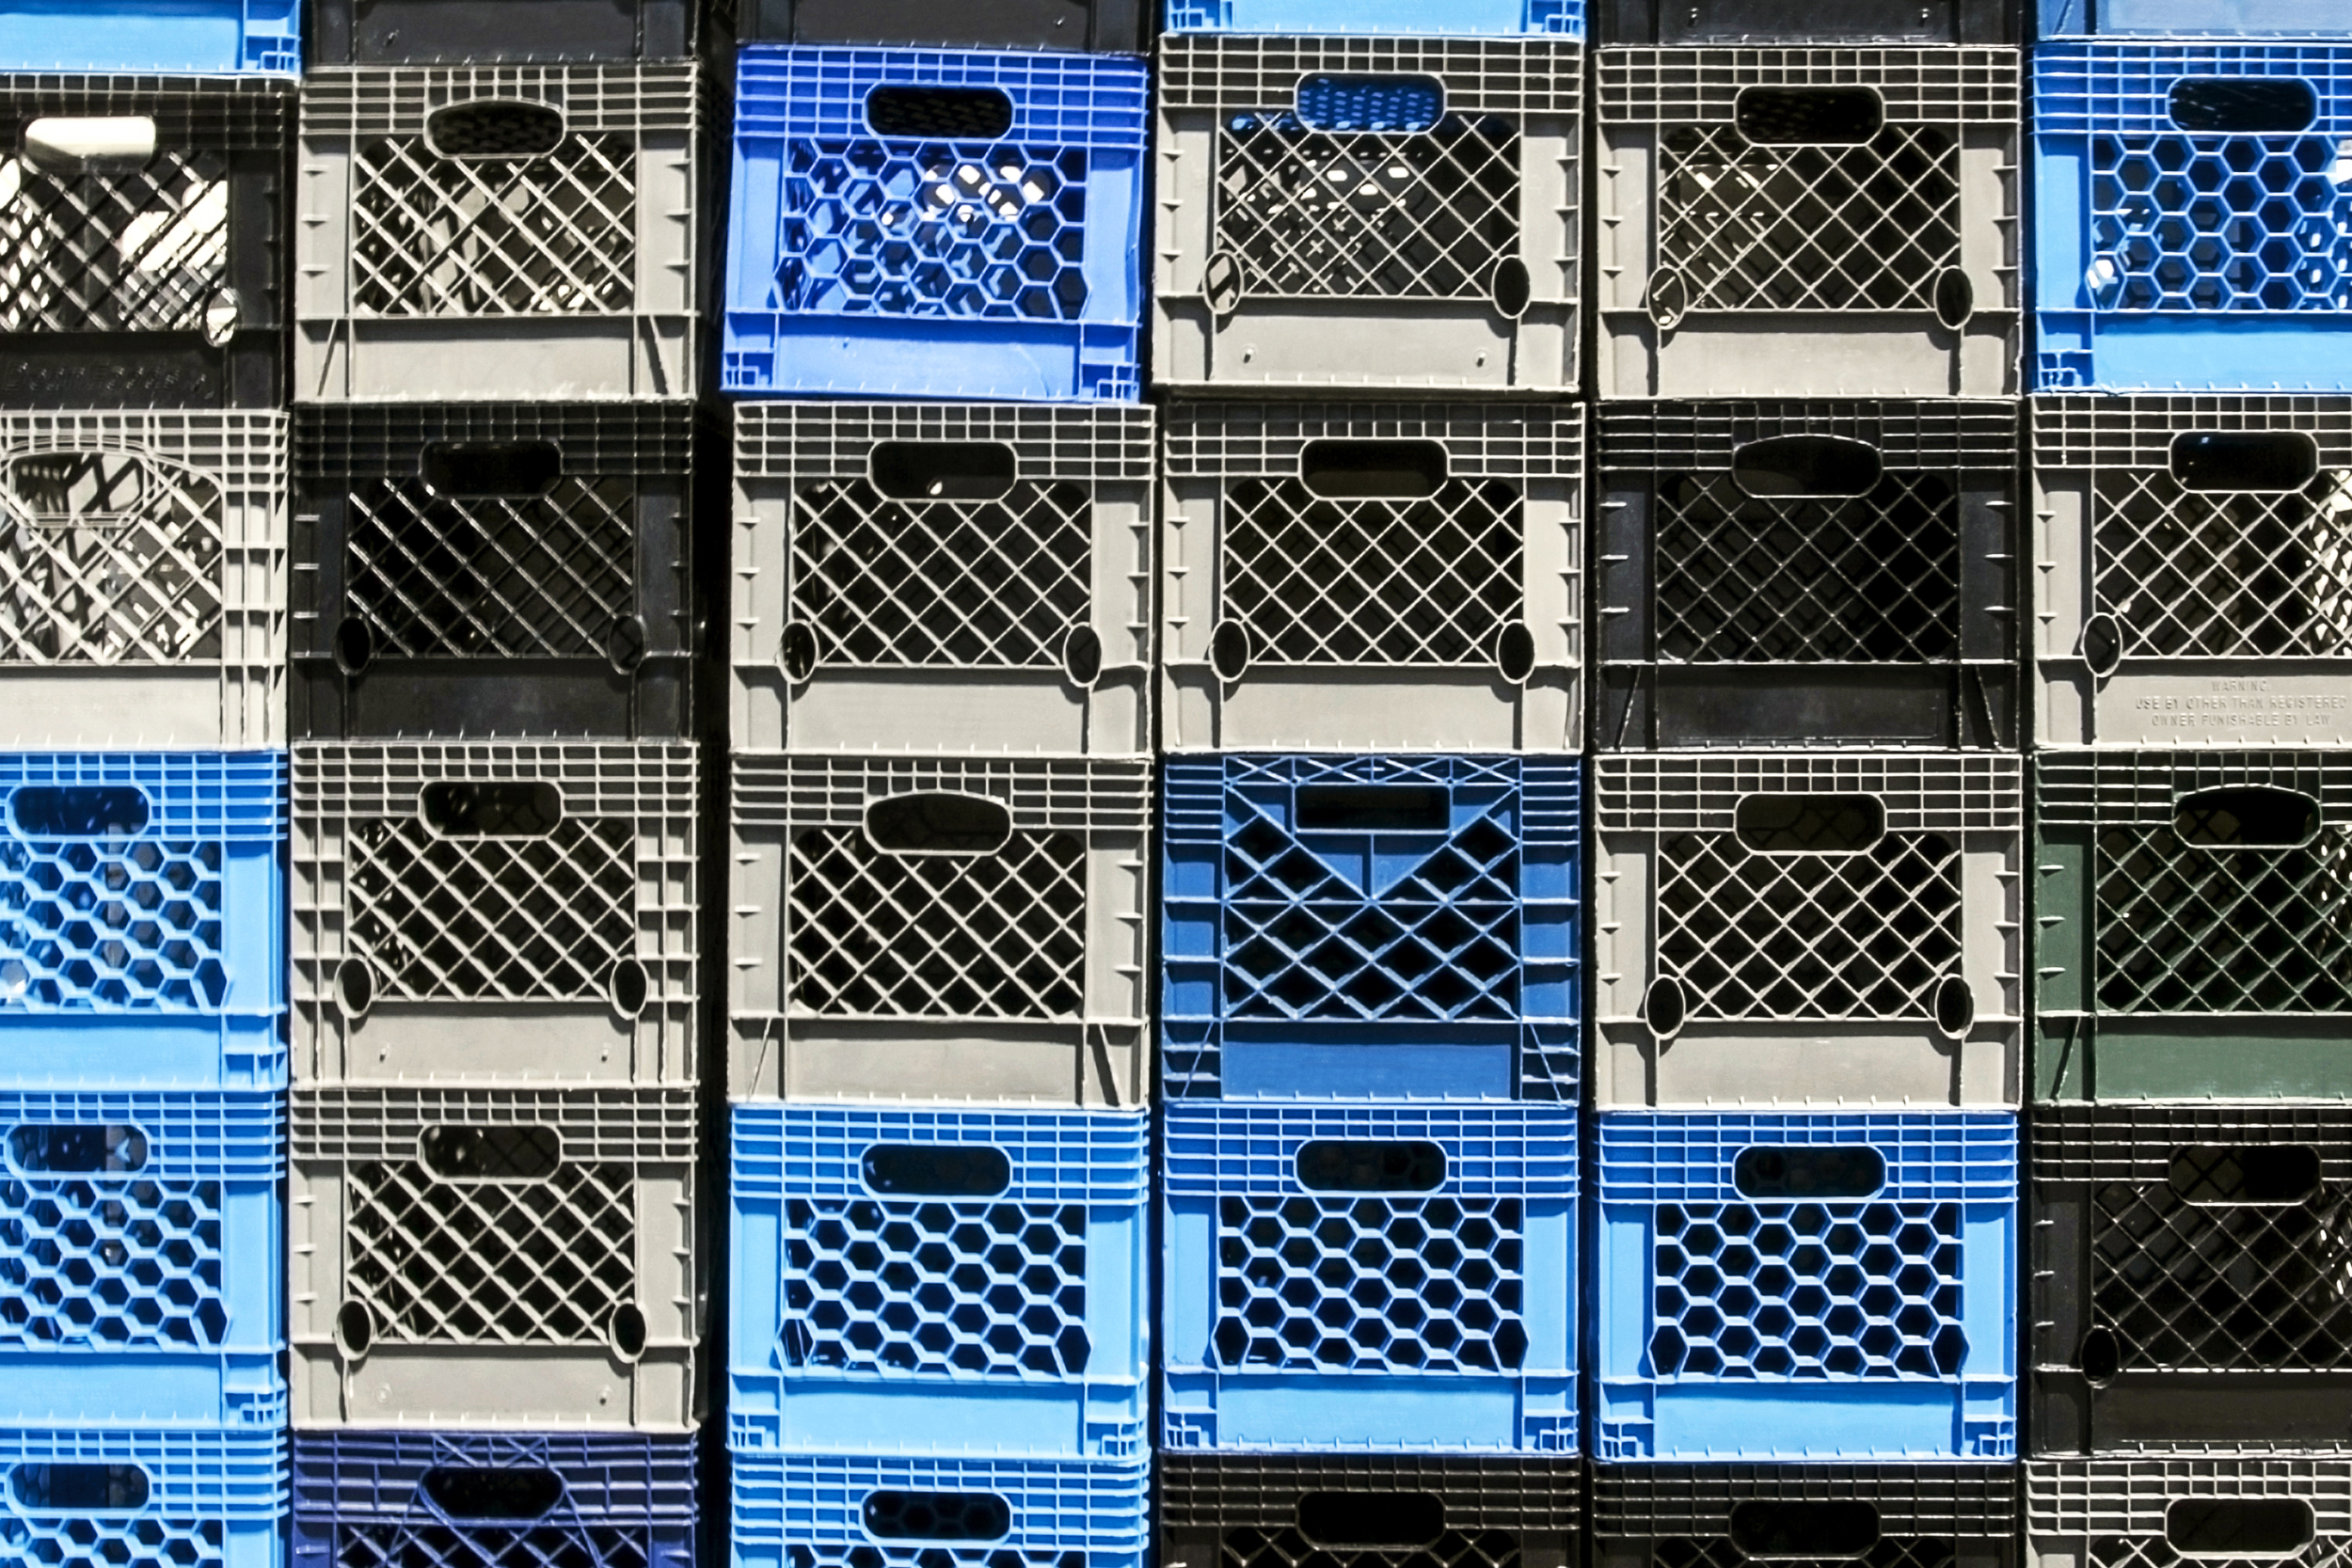 Social media's milk crate challenge could cause 'lifelong' problems, doctors say